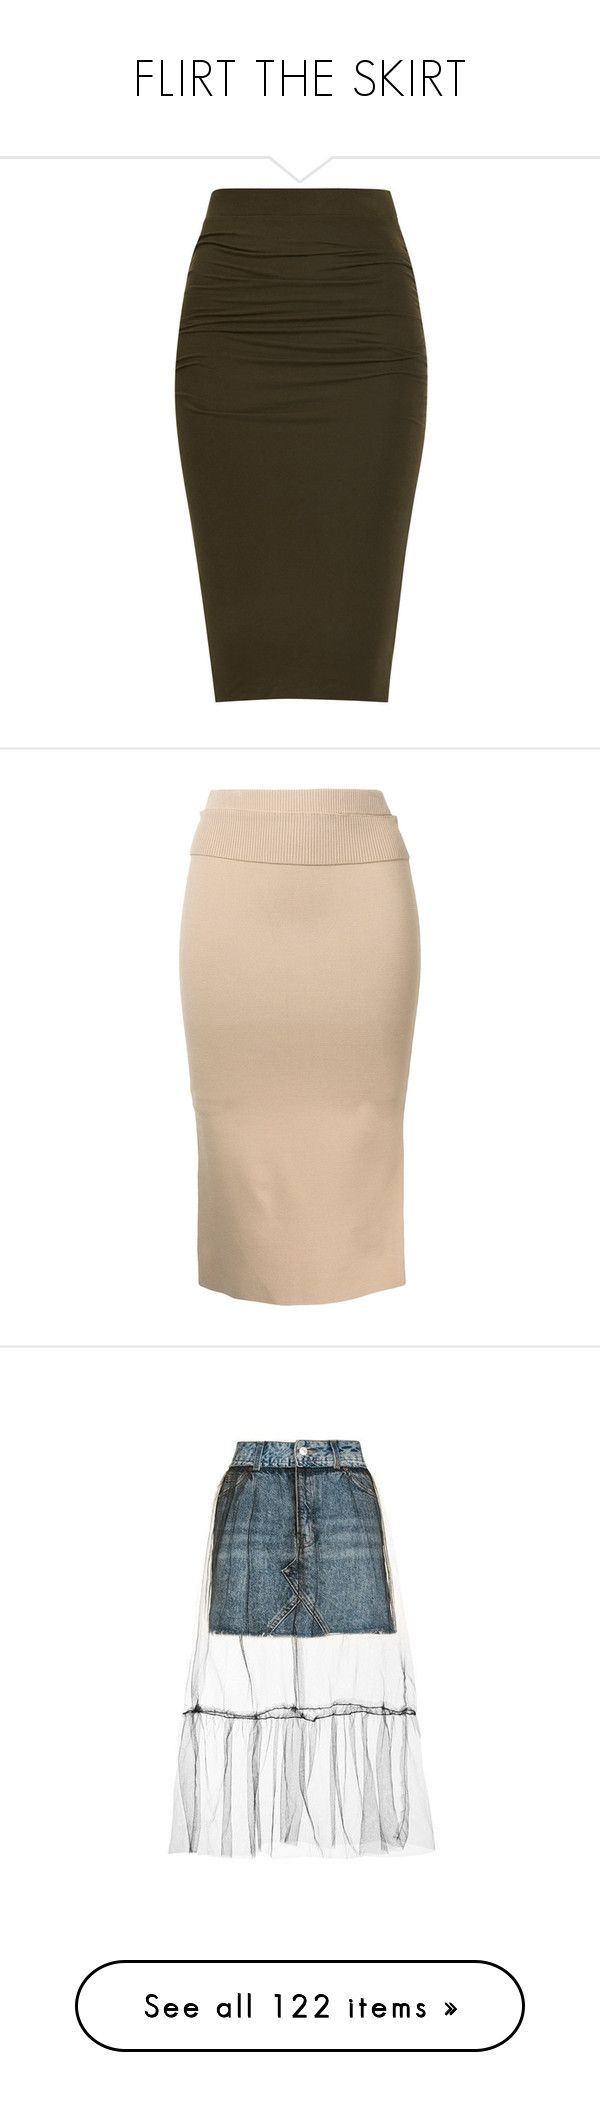 """FLIRT THE SKIRT"" by elizabethhorrell ❤ liked on Polyvore featuring skirts, bottoms, faldas, pants, pencil skirts, pencil skirt, knee length pencil skirt, brown pencil skirt, brown skirt and nude"